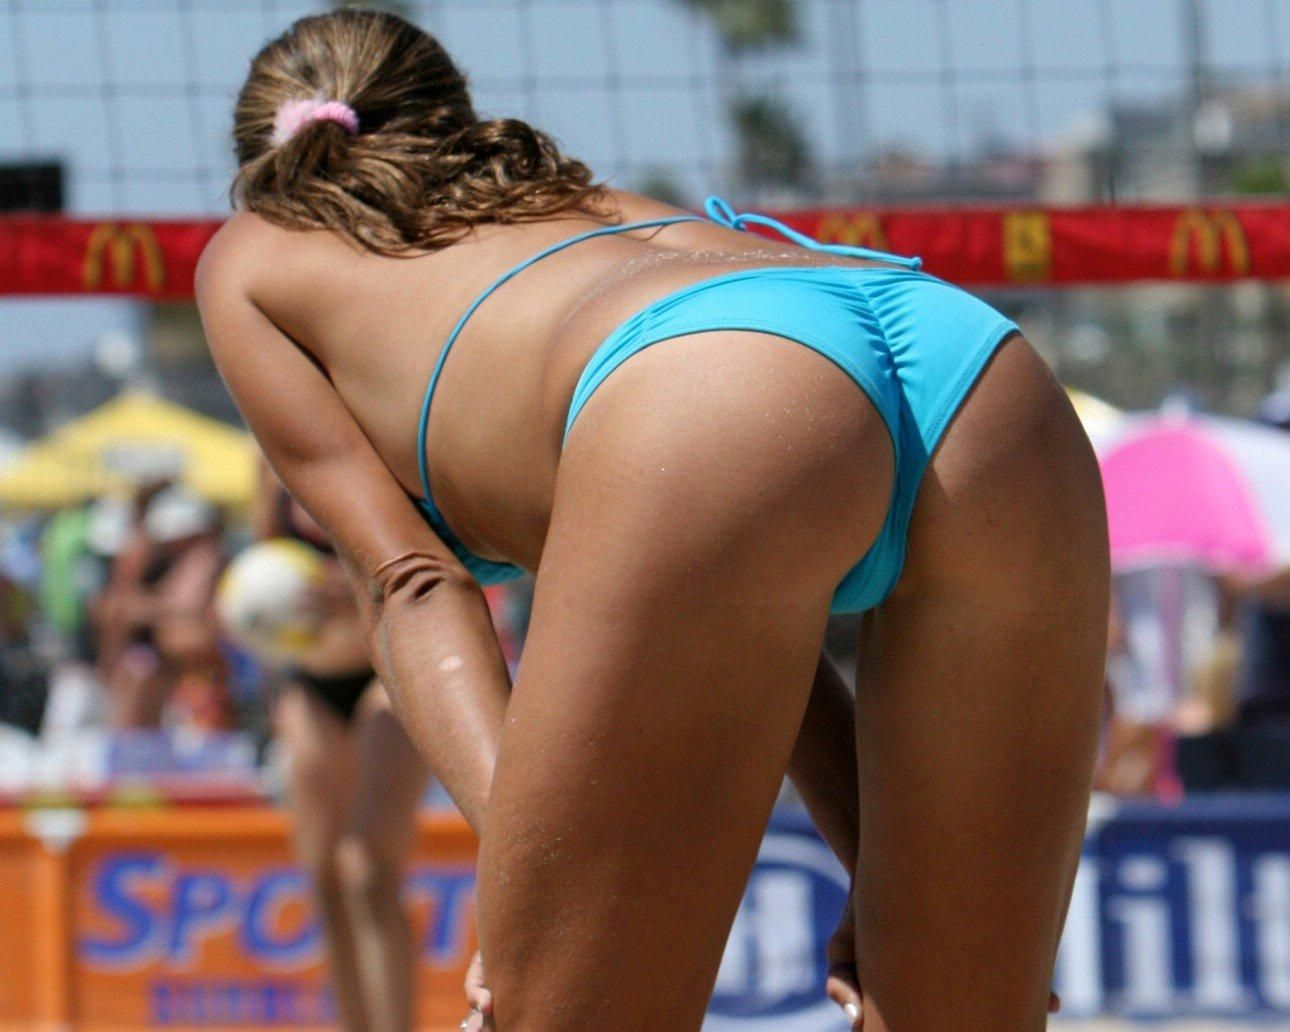 Girl volleyball players with big booty nude, sexy ukrainian girls naked